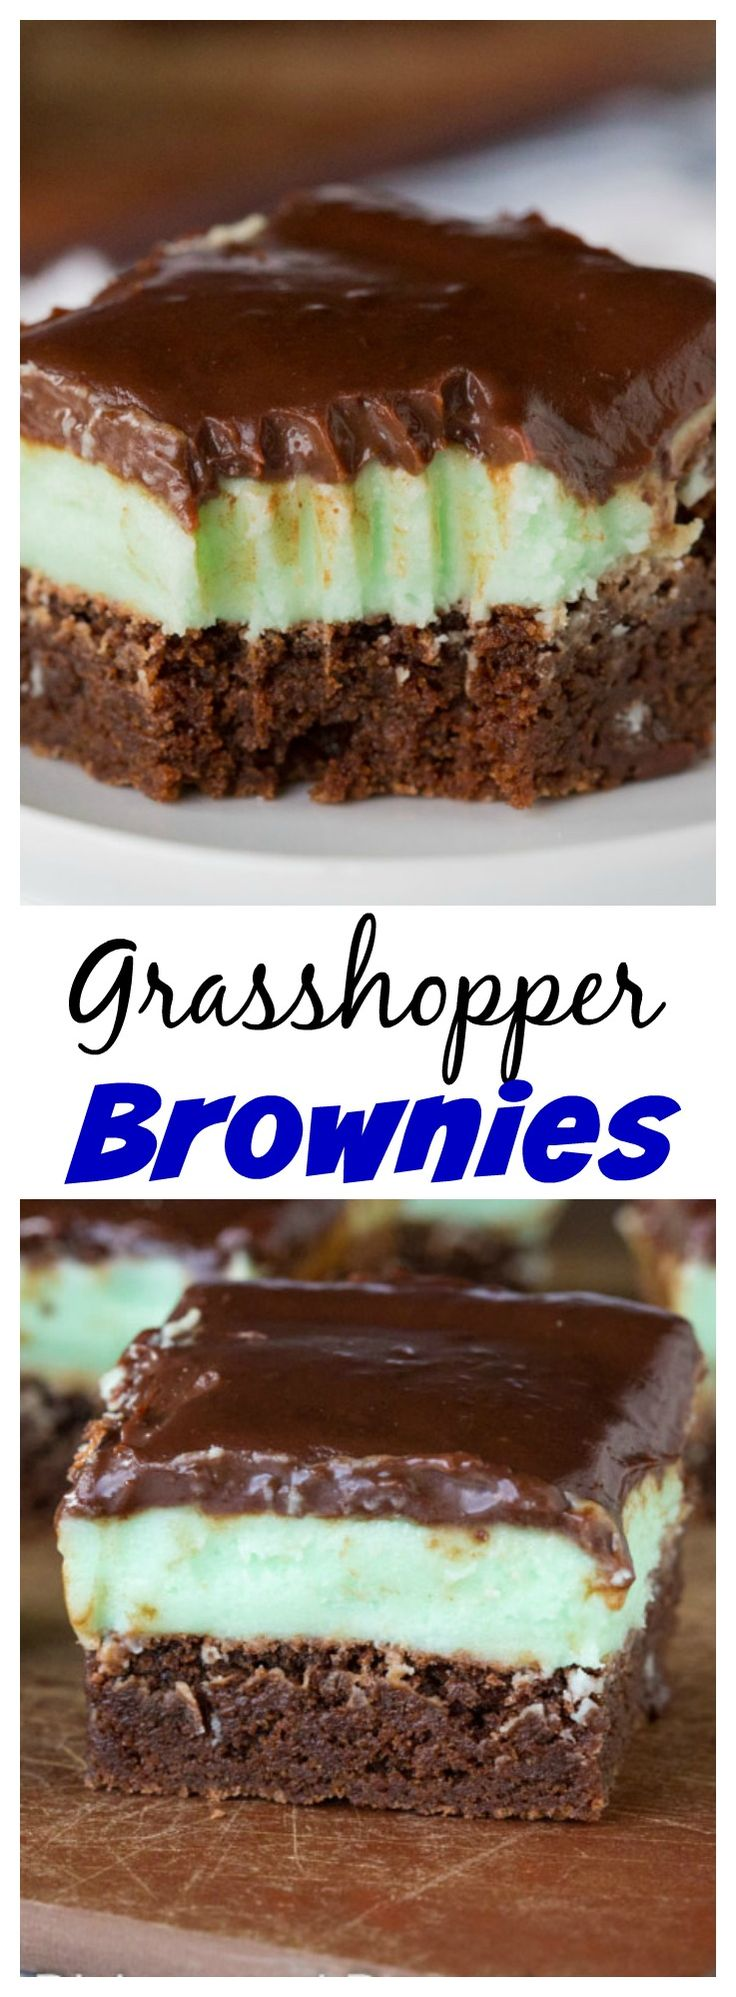 Grasshopper Brownies – fudgy brownies with minty butter cream frosting and topped with a chocolate ganache.